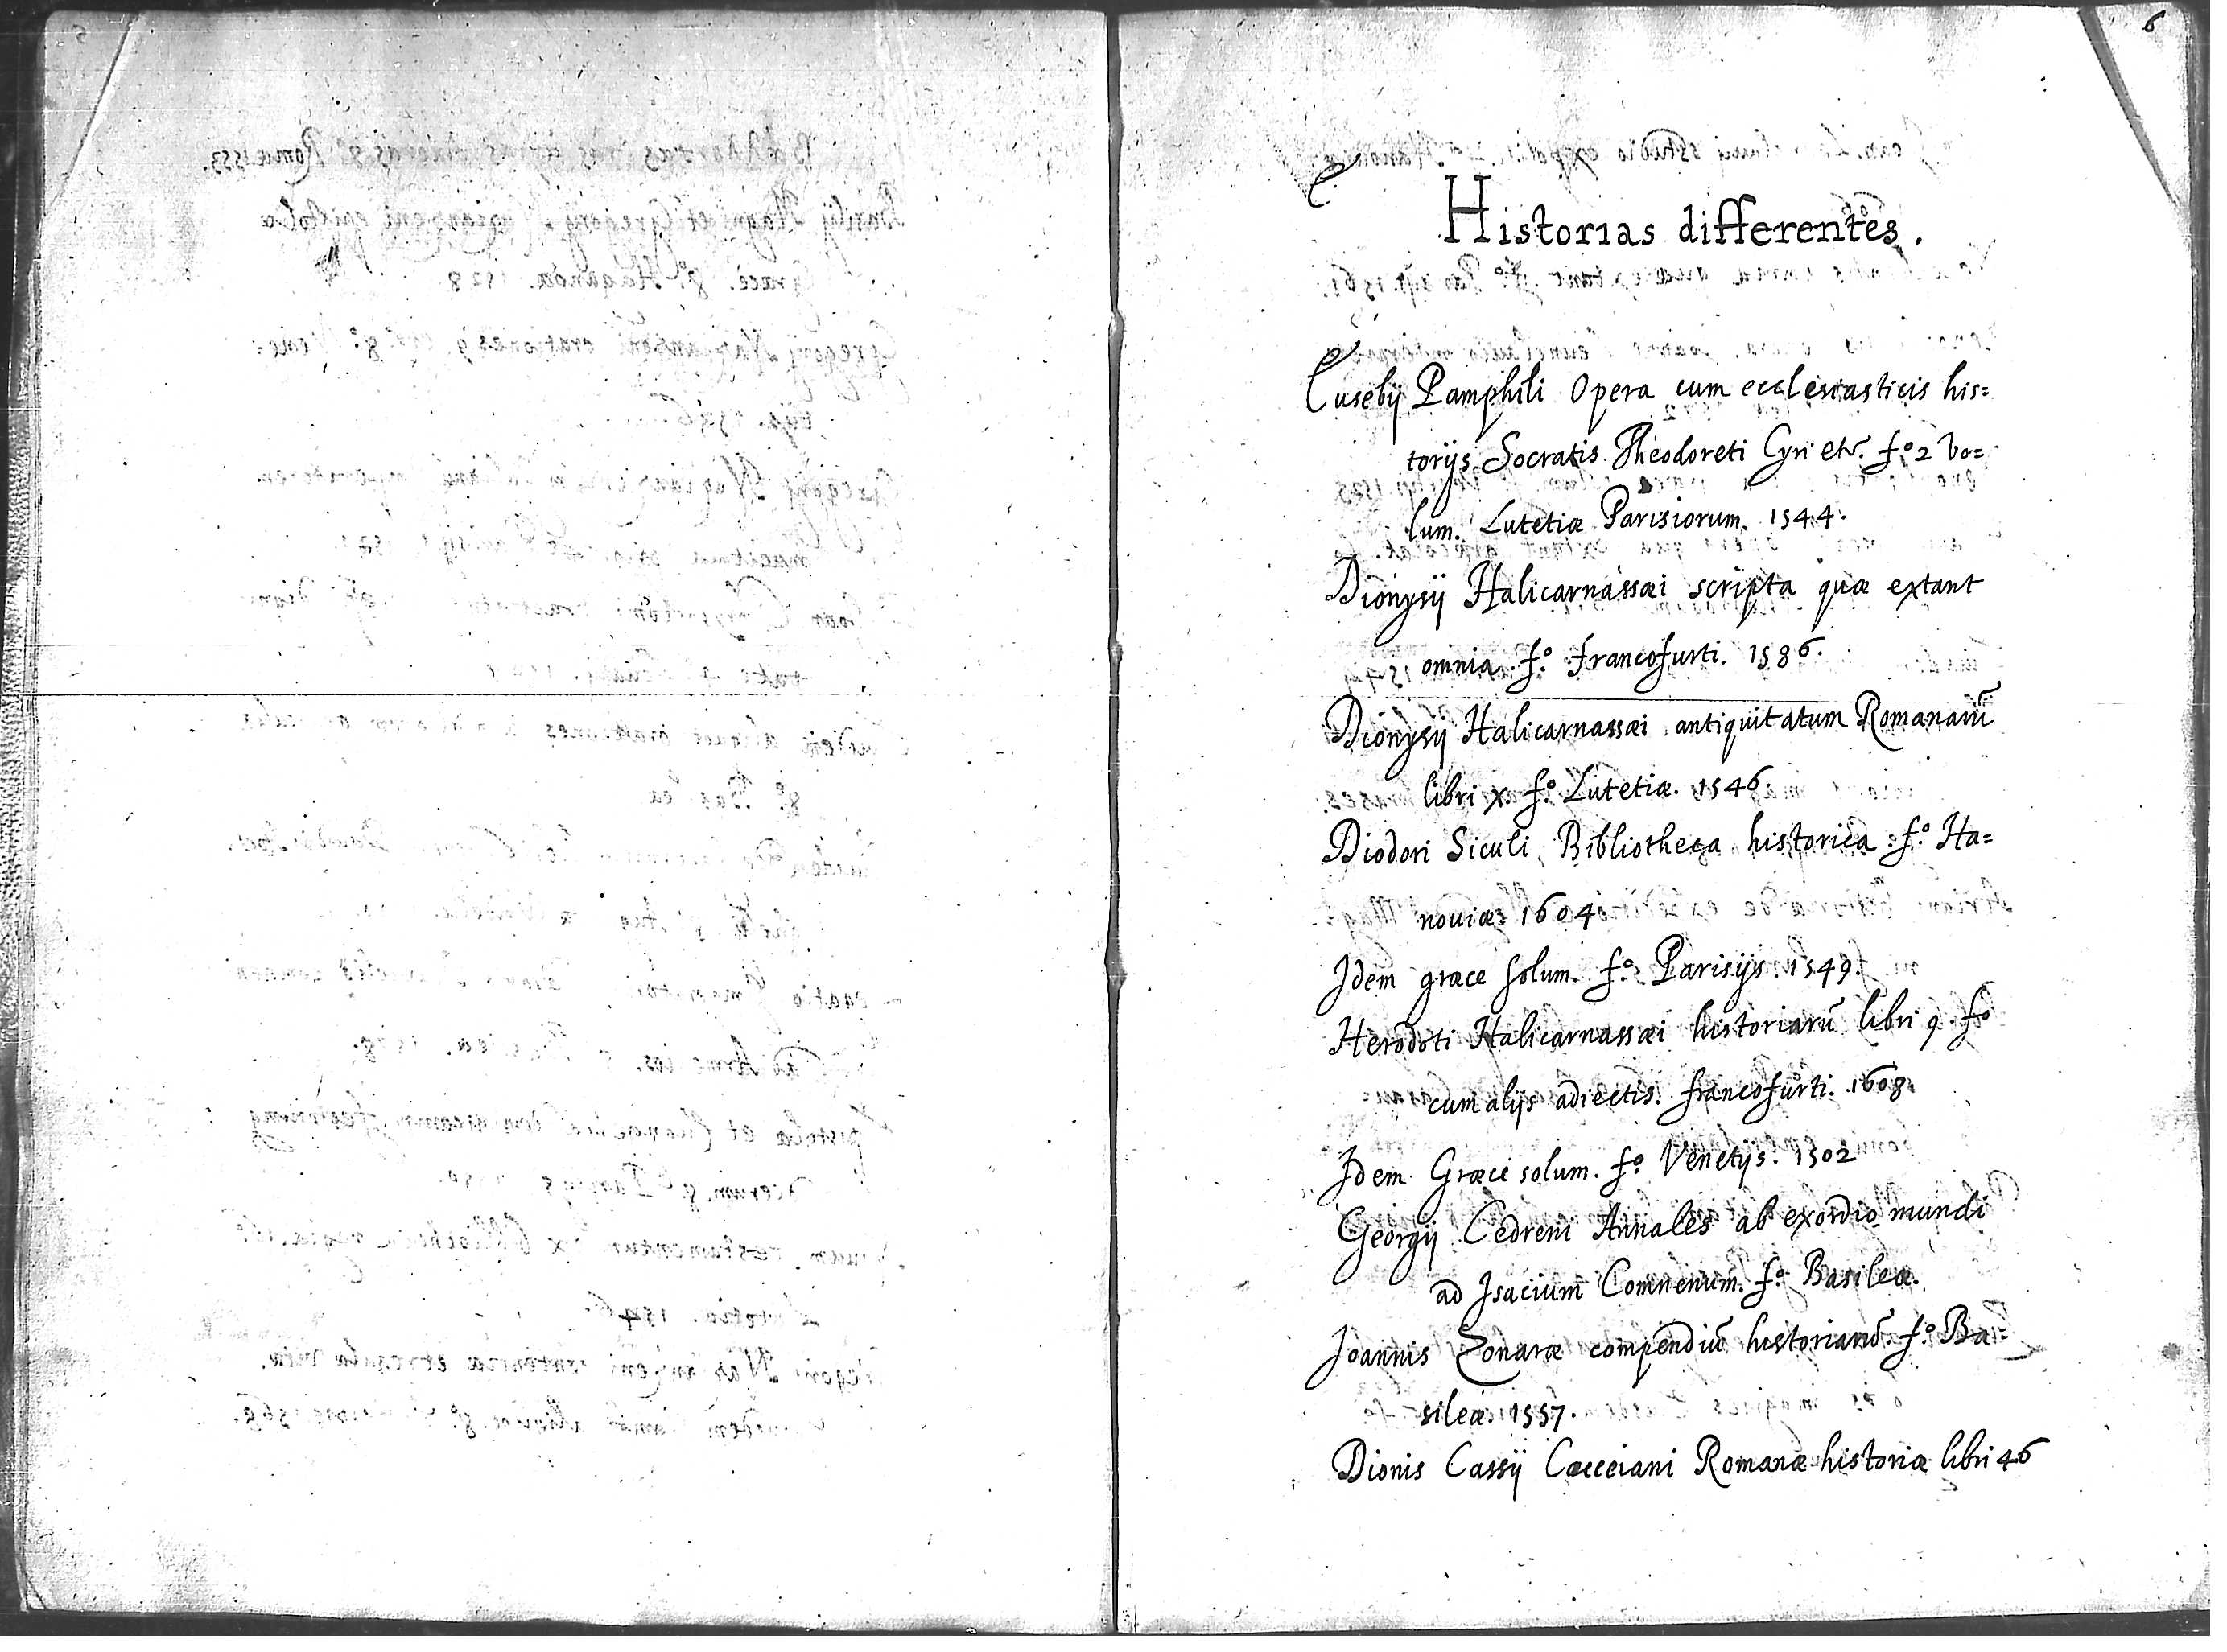 Earliest Extant Document Containing Russian 81